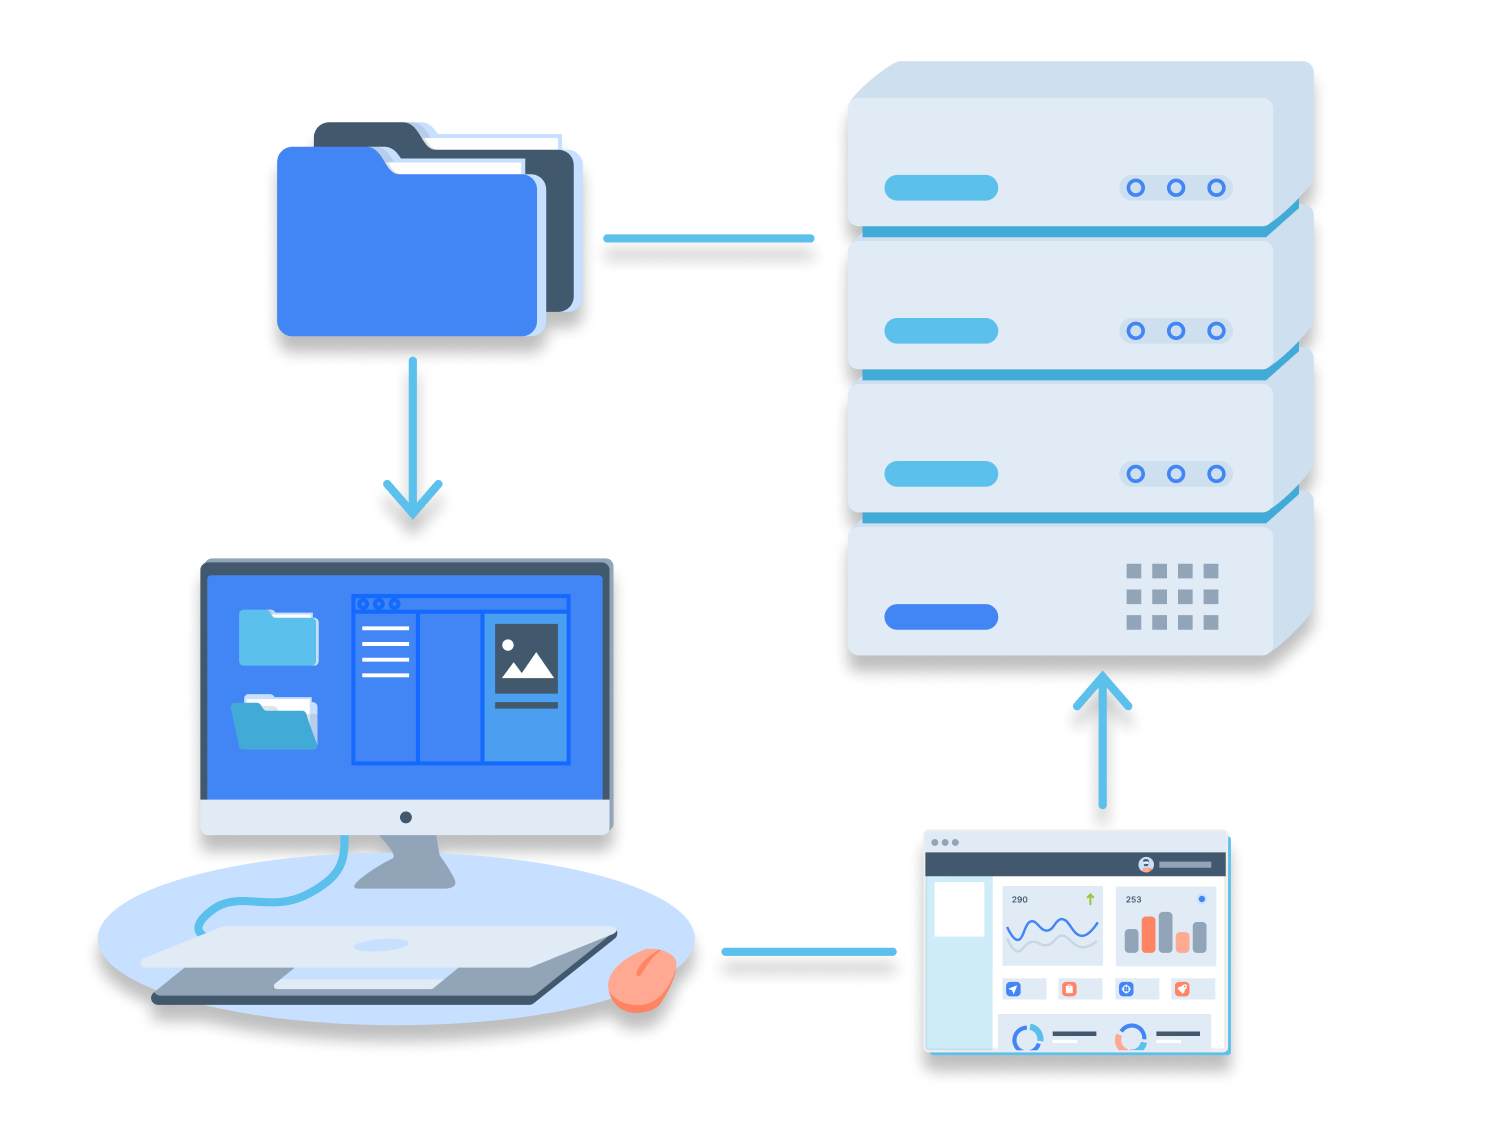 The cycle of a cloud database. User submits data to the database which is stored and retrievable by the owner.